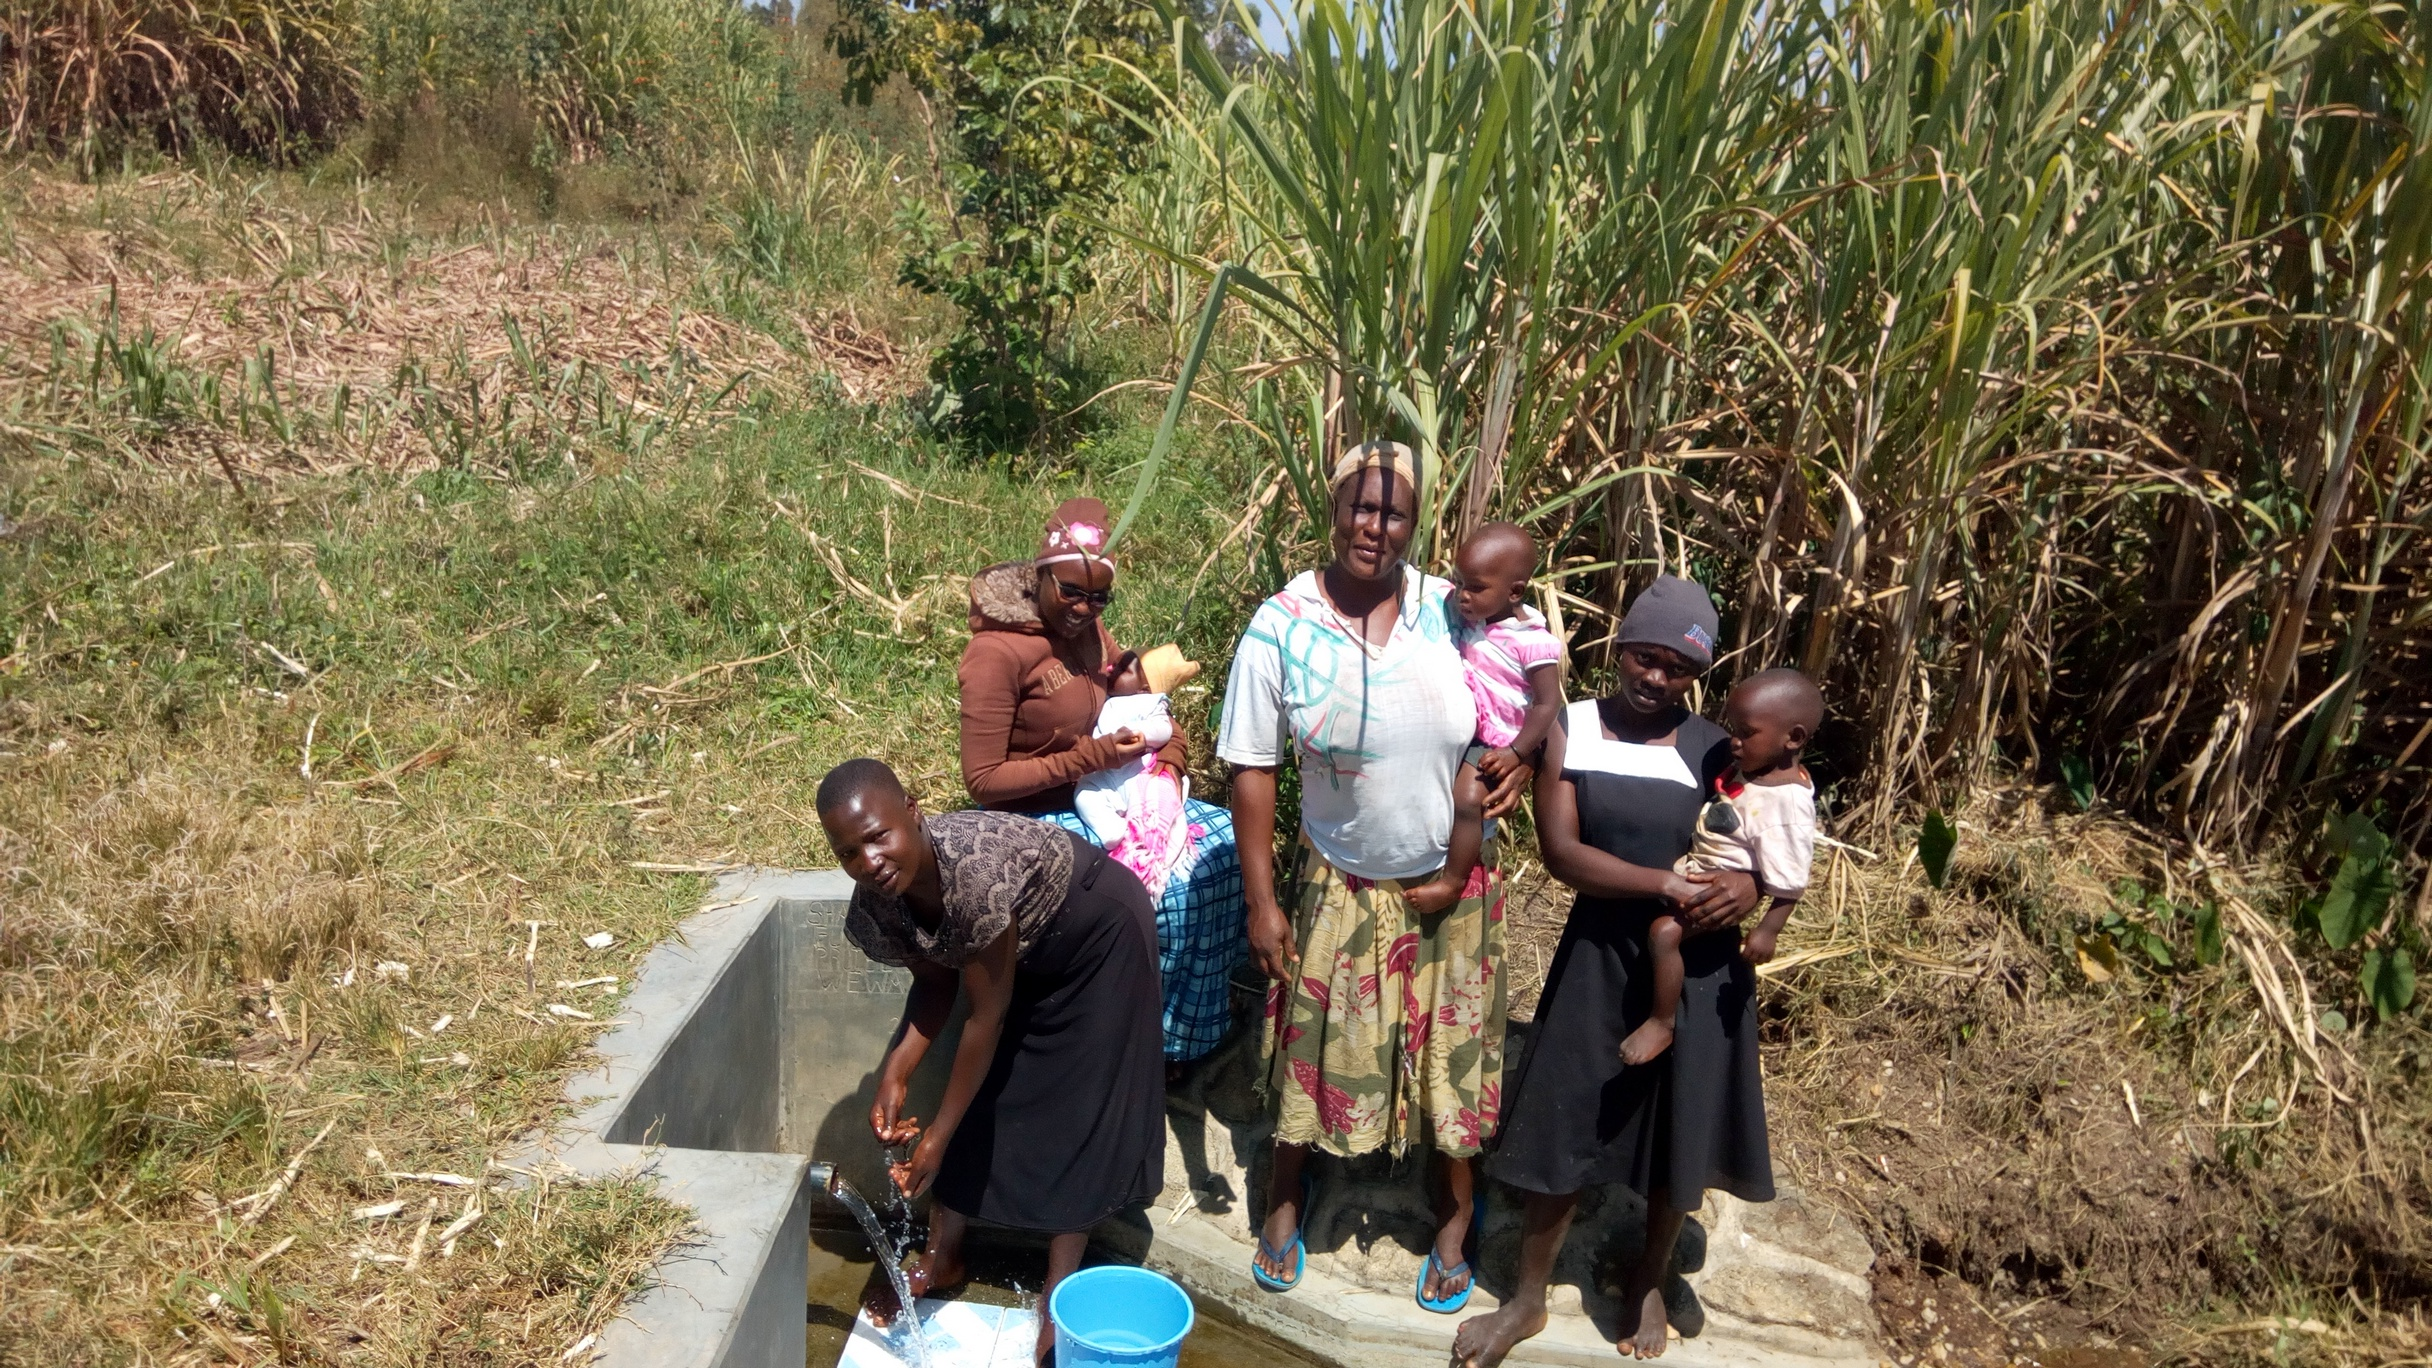 The Water Project : kenya4846-women-from-the-community-lined-up-to-fetch-water-from-the-spring